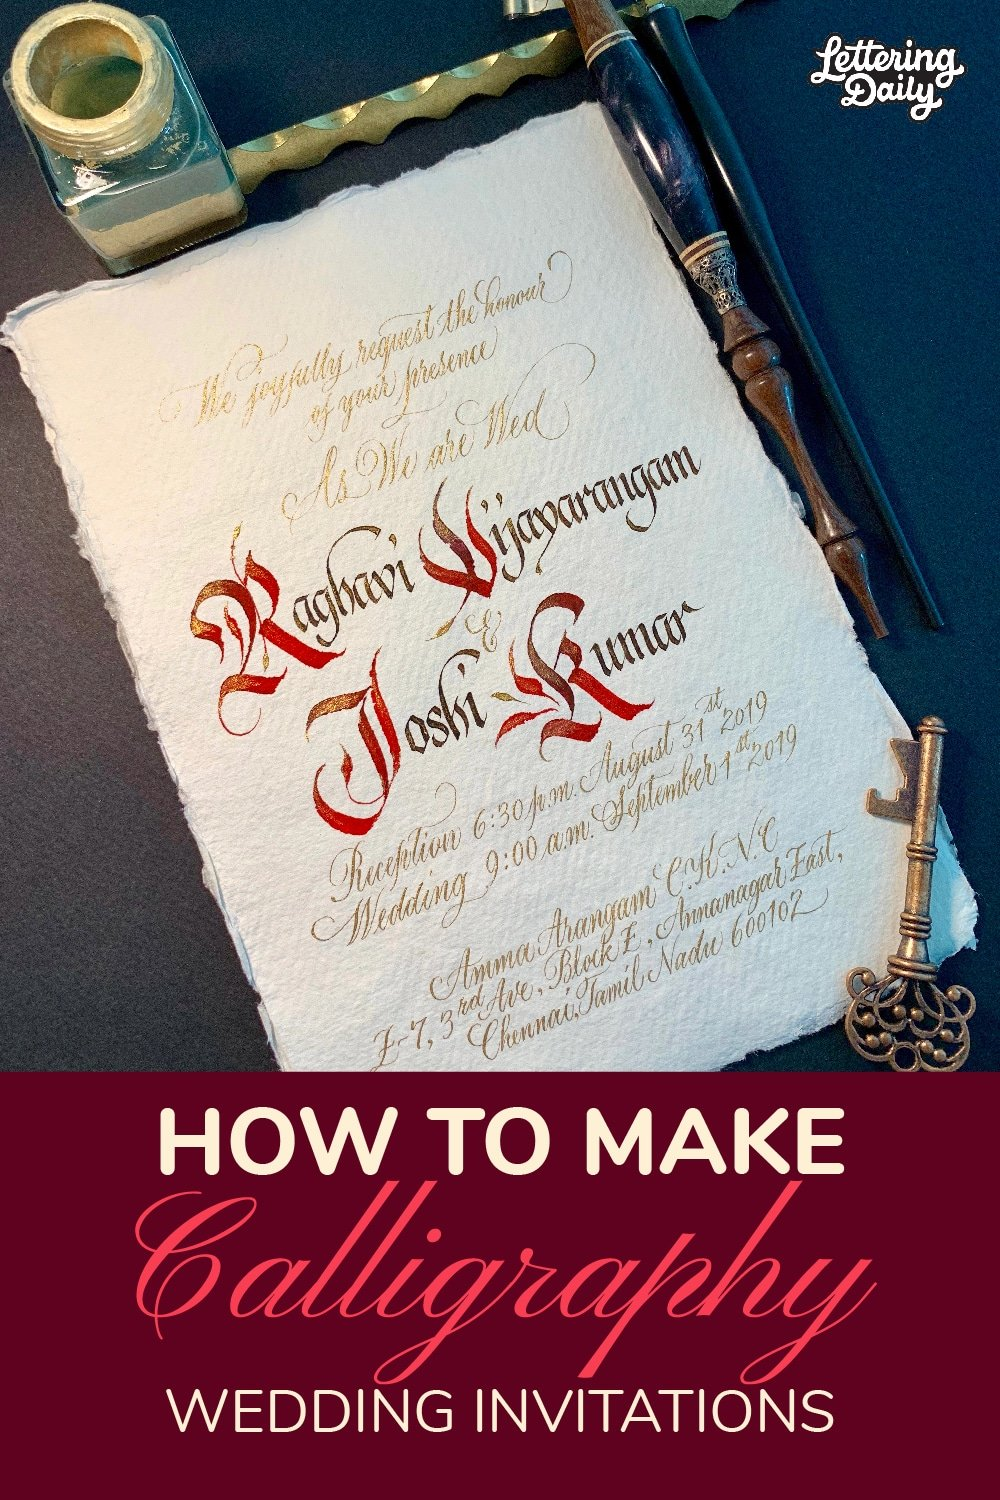 How To Make Calligraphy Wedding Invitations - Pinterest Pin - Lettering Daily-01